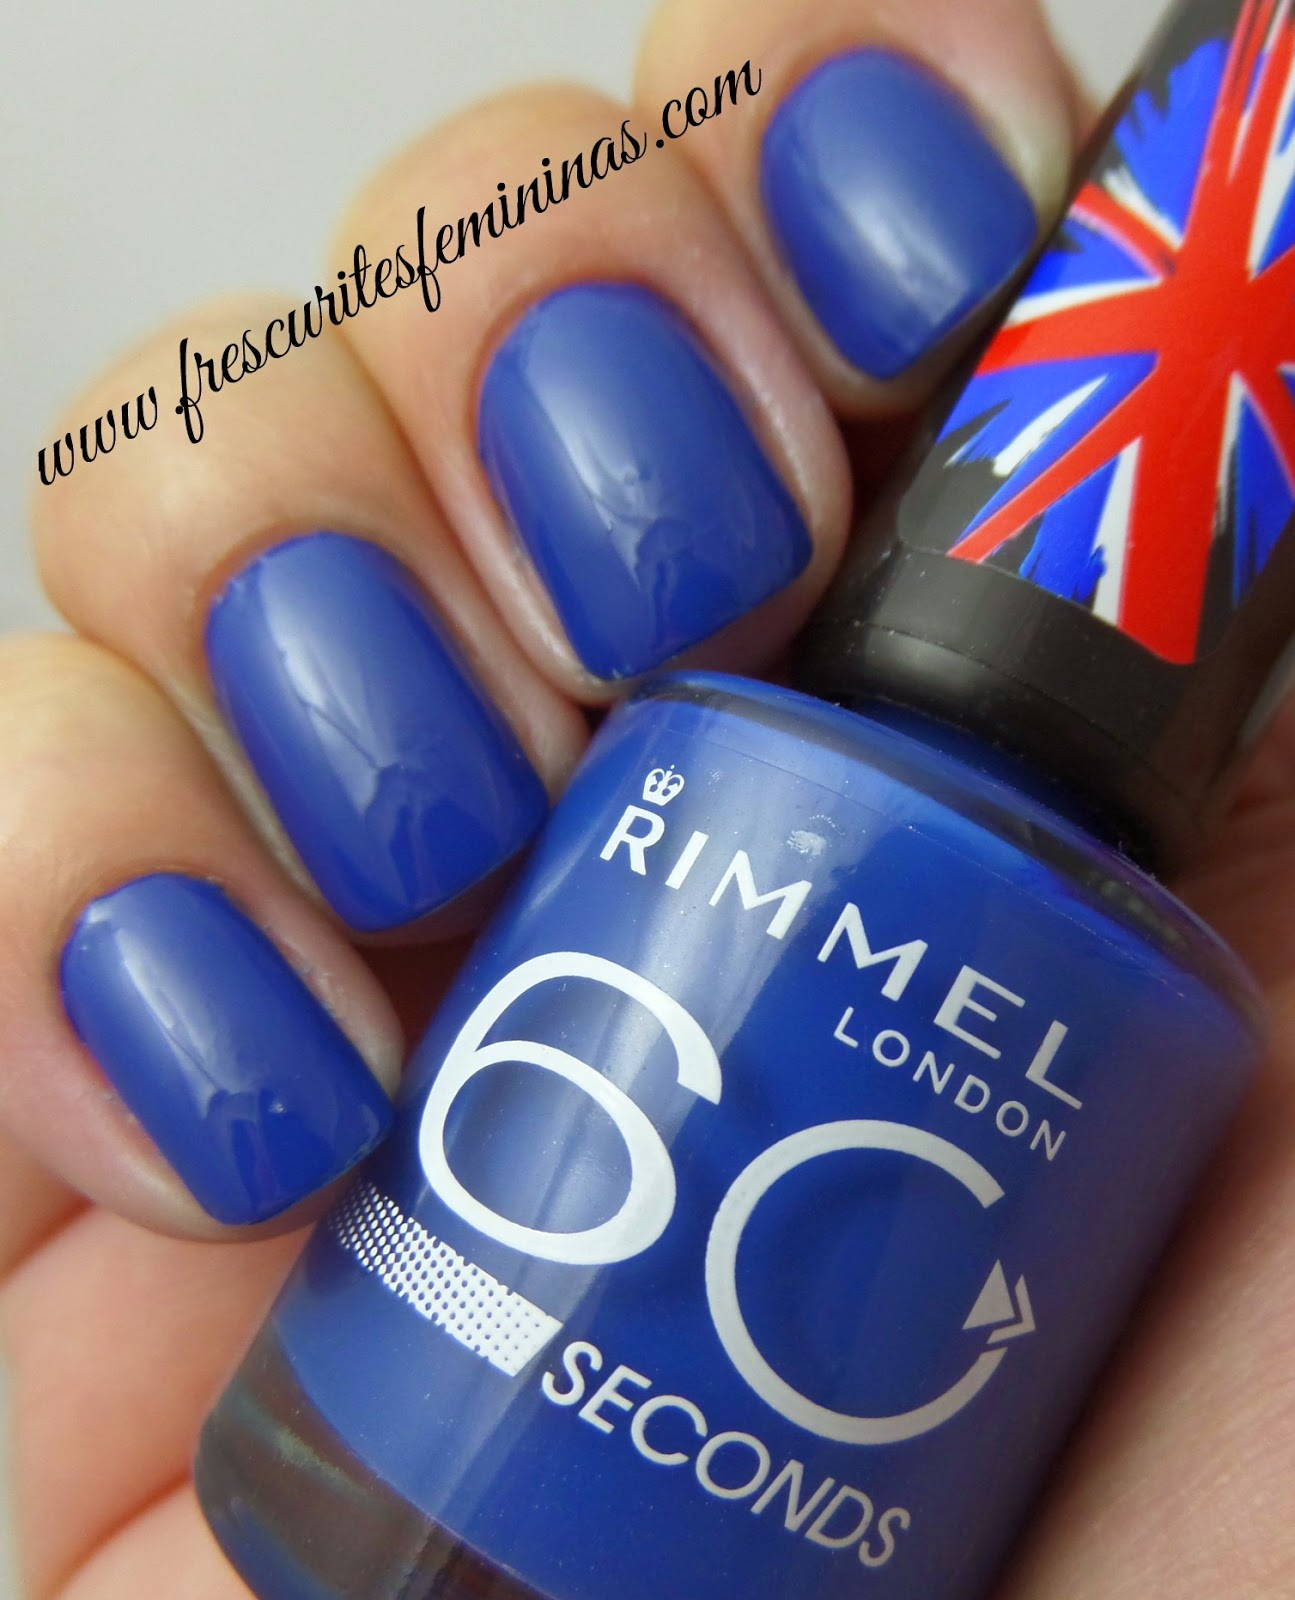 Rimmel, London, 60, seconds, blue, my, mind, frescurites, femininas, blue, nails, esmalte, polish